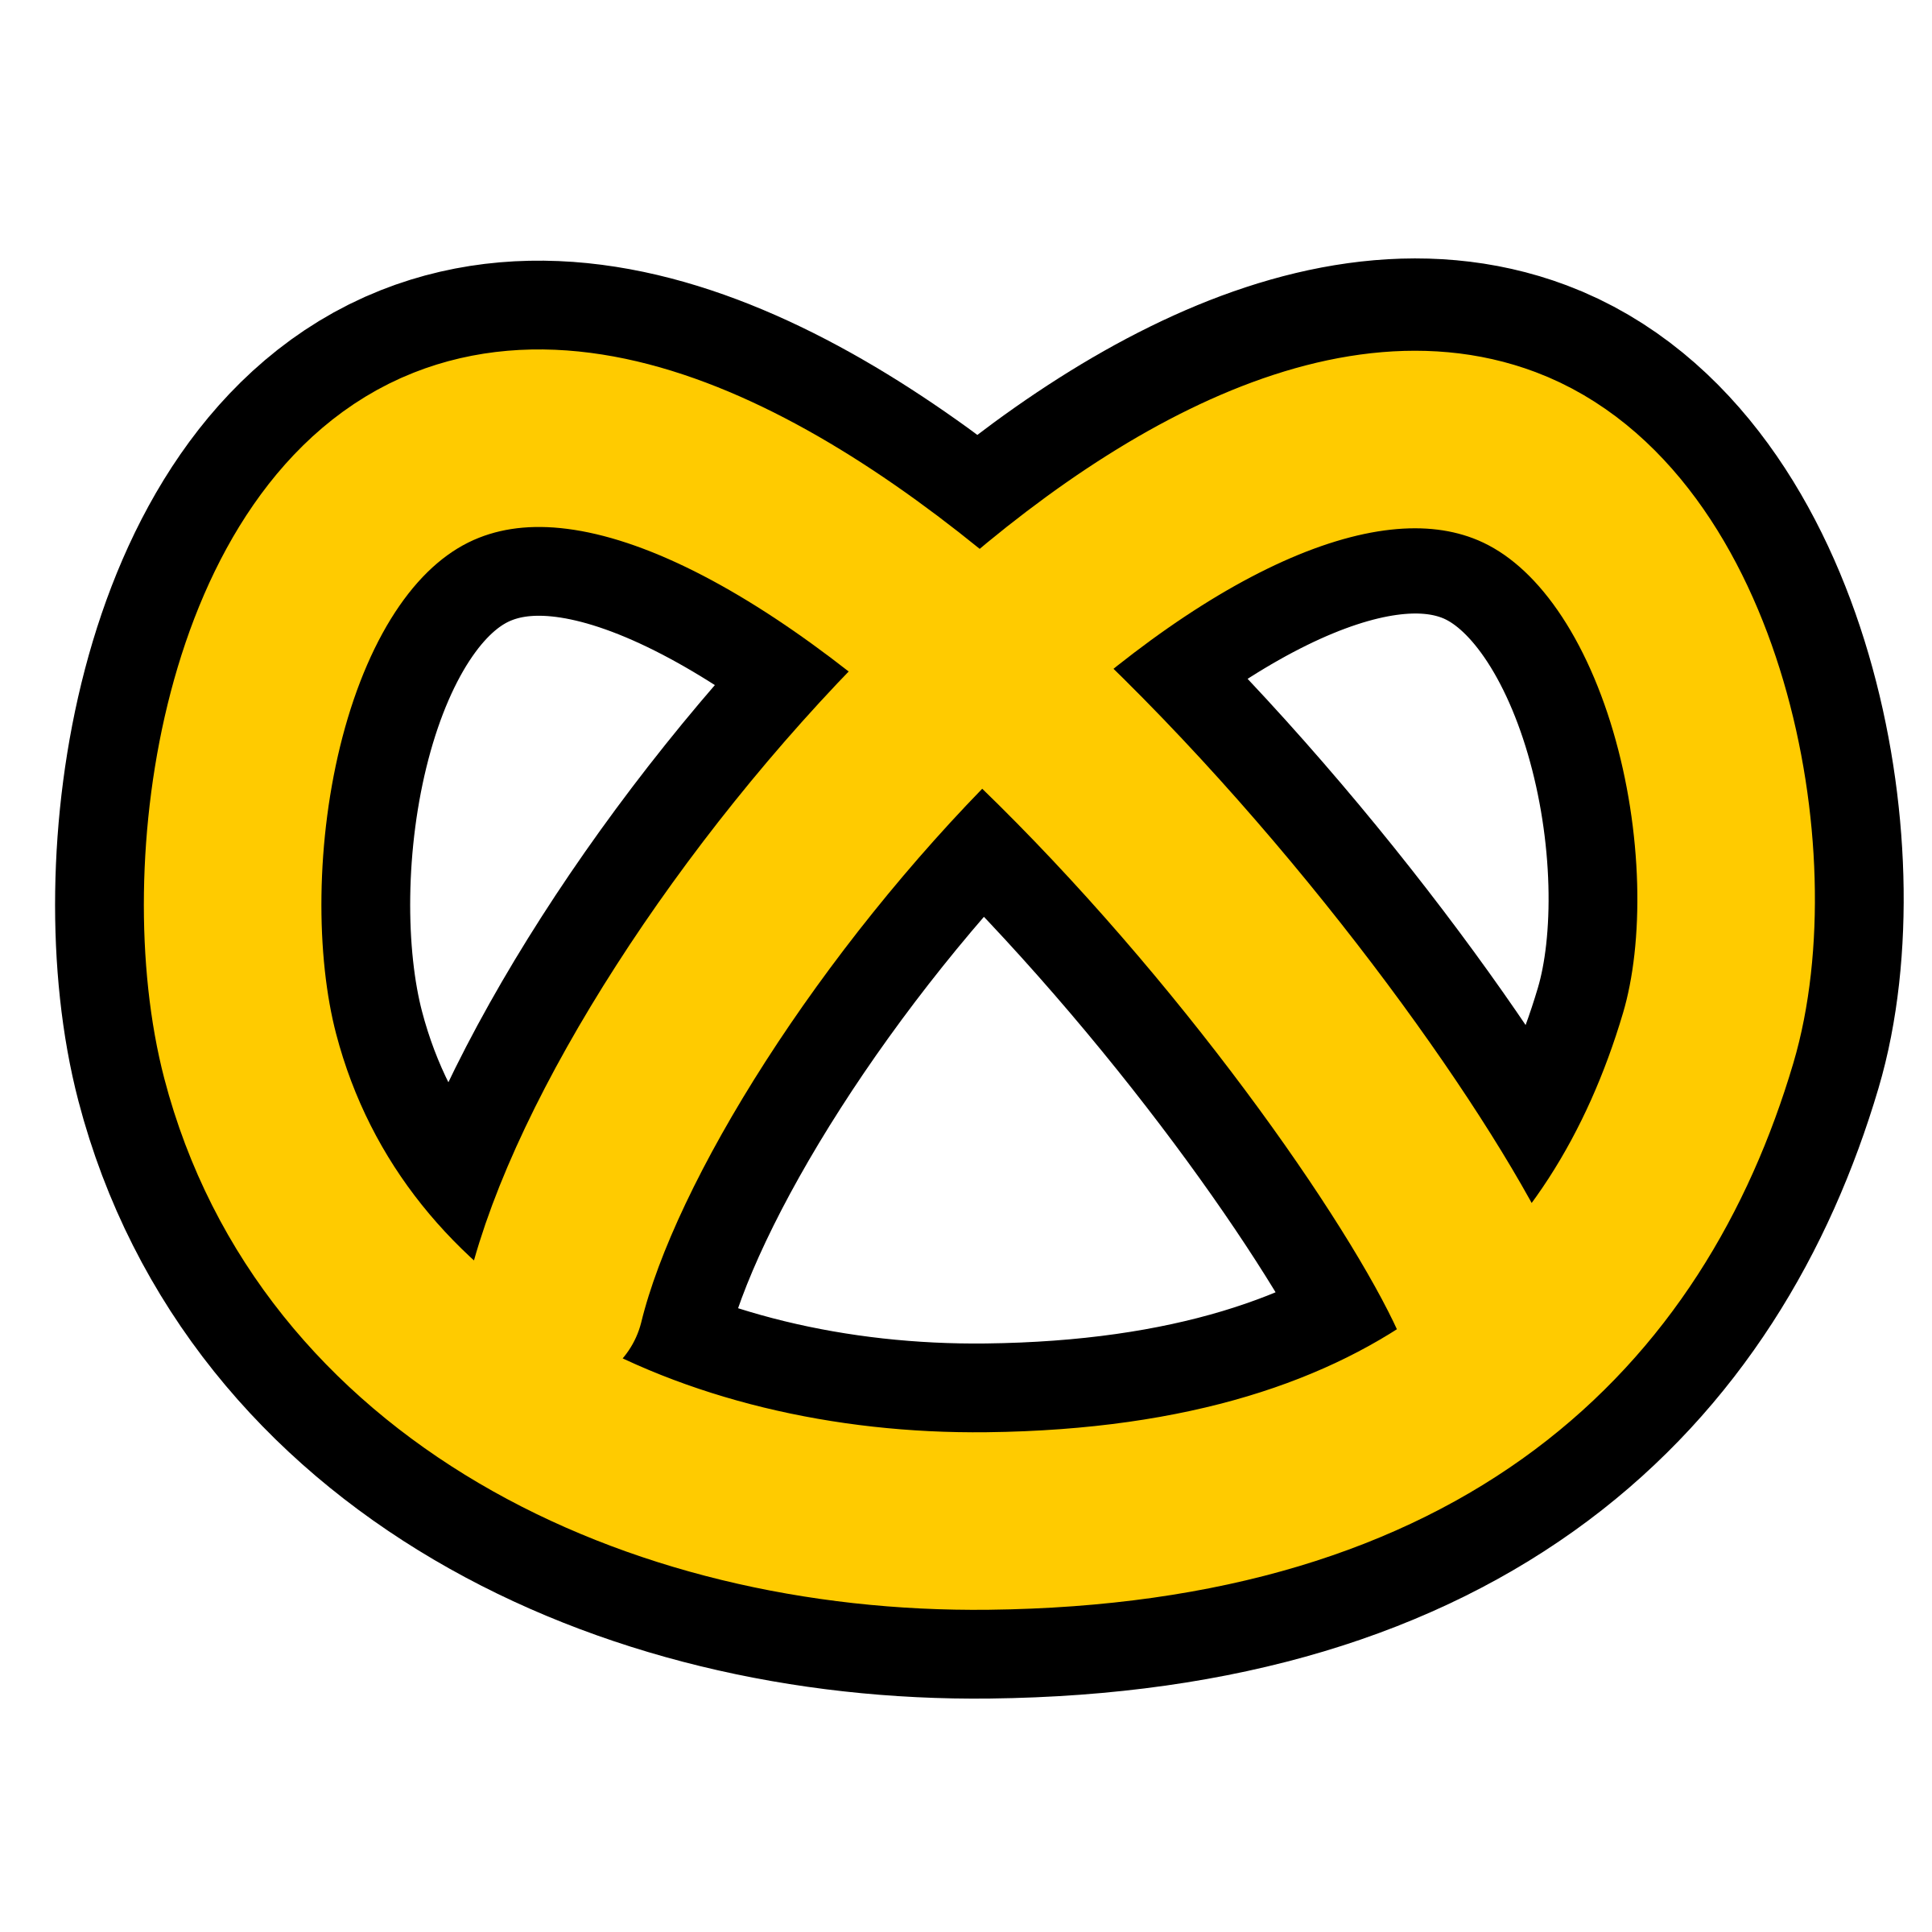 Pretzel icon by pitr